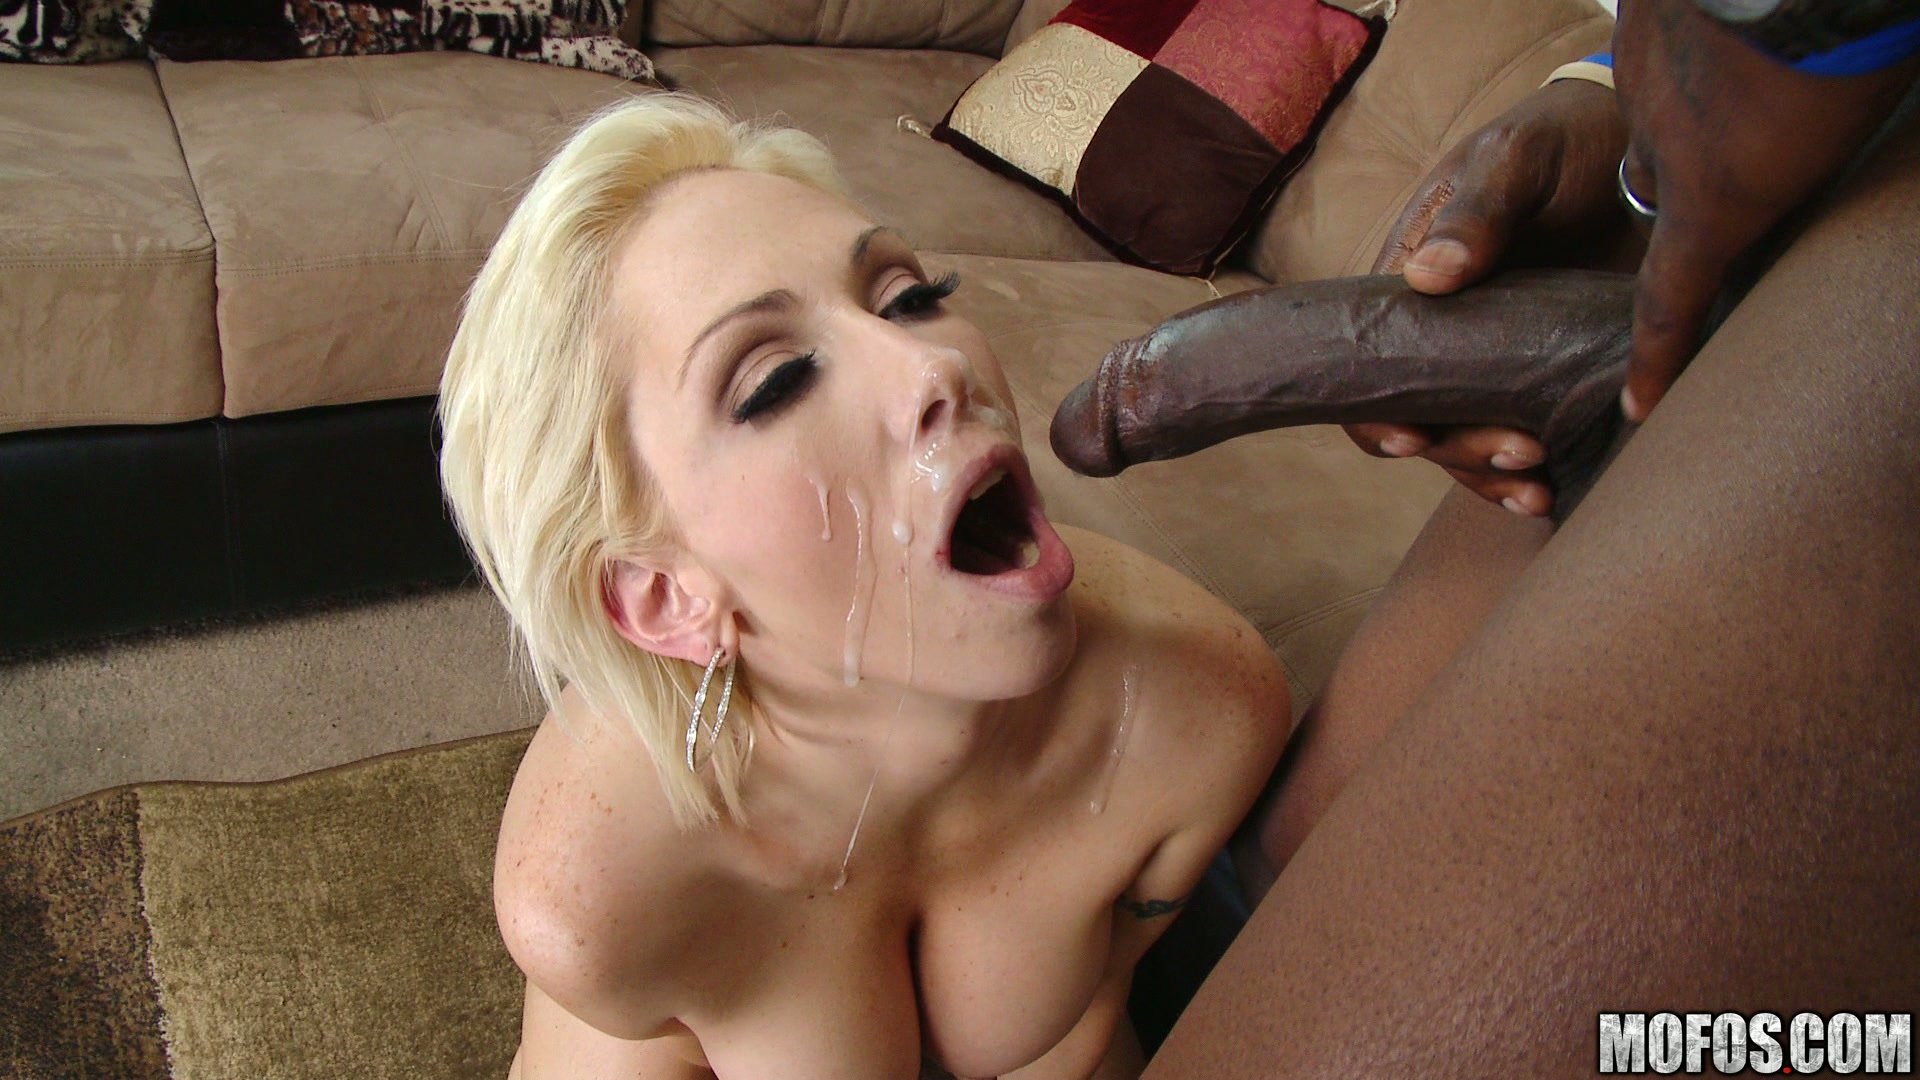 Deepthroat swallow pornstar whole